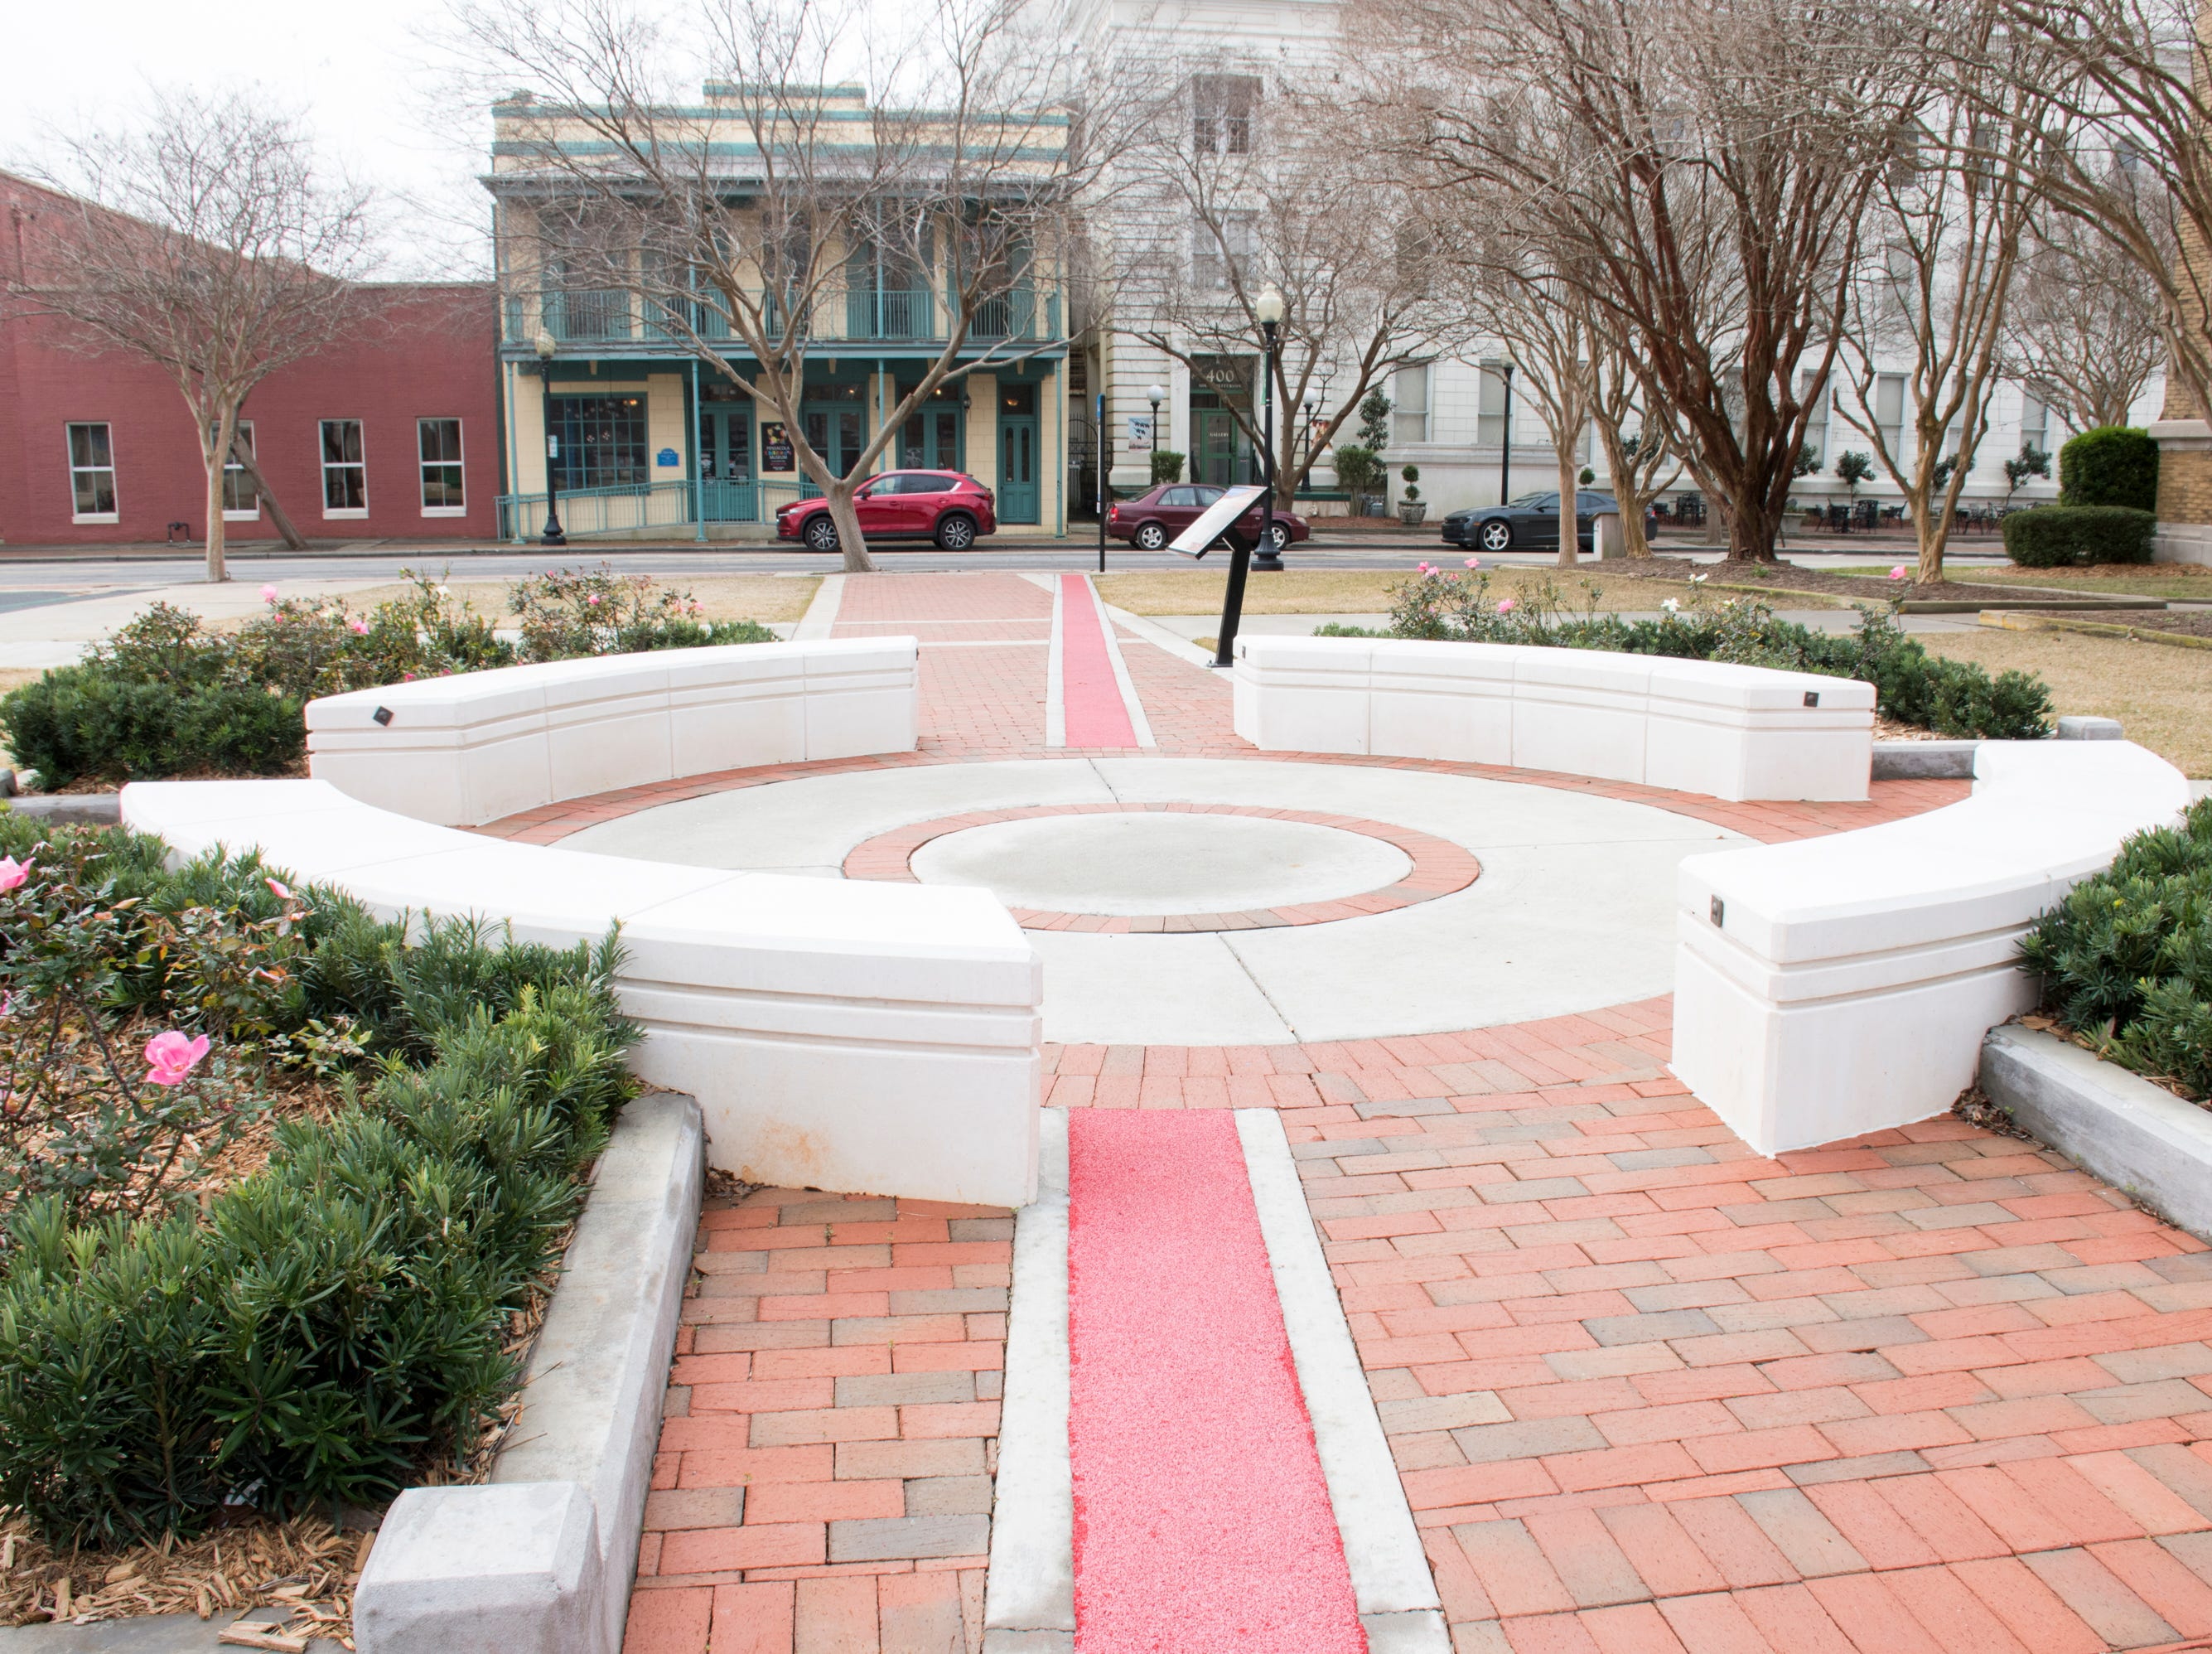 The storytelling circle at the Museum Plaza behind the T.T. Wentworth Museum in downtown Pensacola on Tuesday, February 5, 2019.